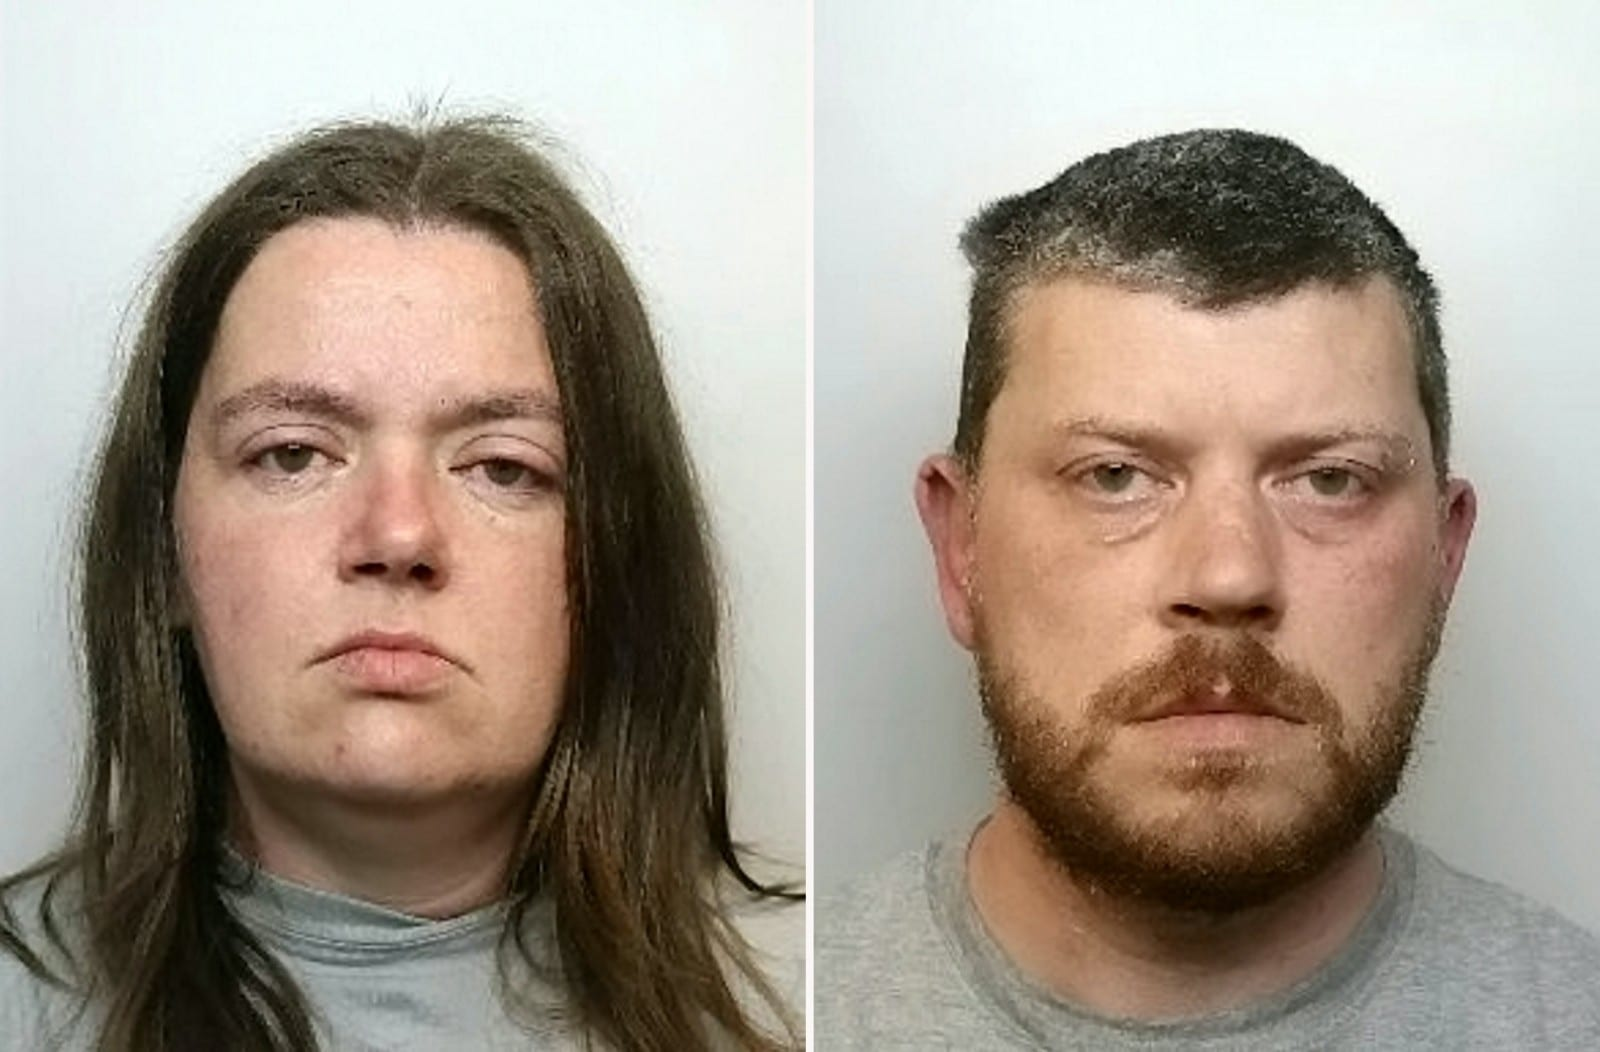 'I Gave You Life, I Can Take It Away' - Evil Woman Jailed For Strangling Two Of Her Sons And Plotting To Kill Four Others